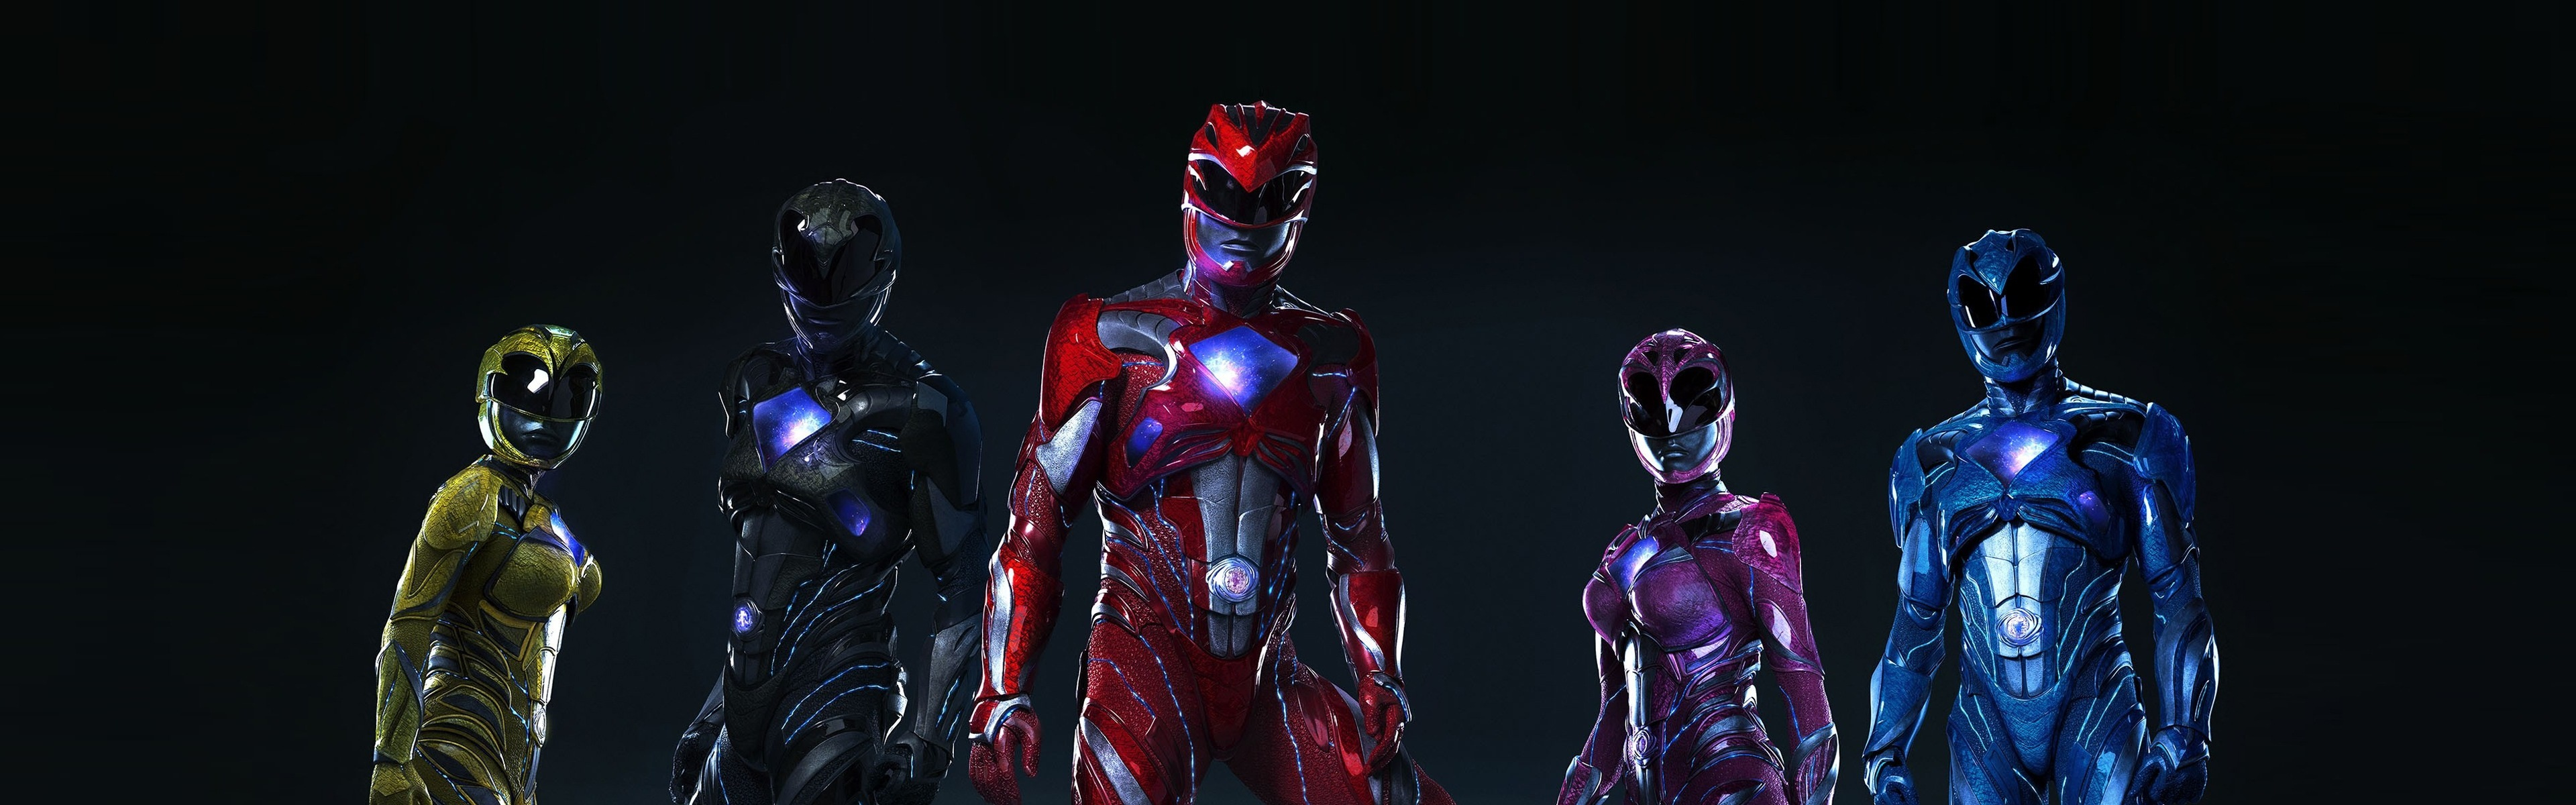 power rangers 2017 wallpaper | 3840x1200 multi monitor panorama